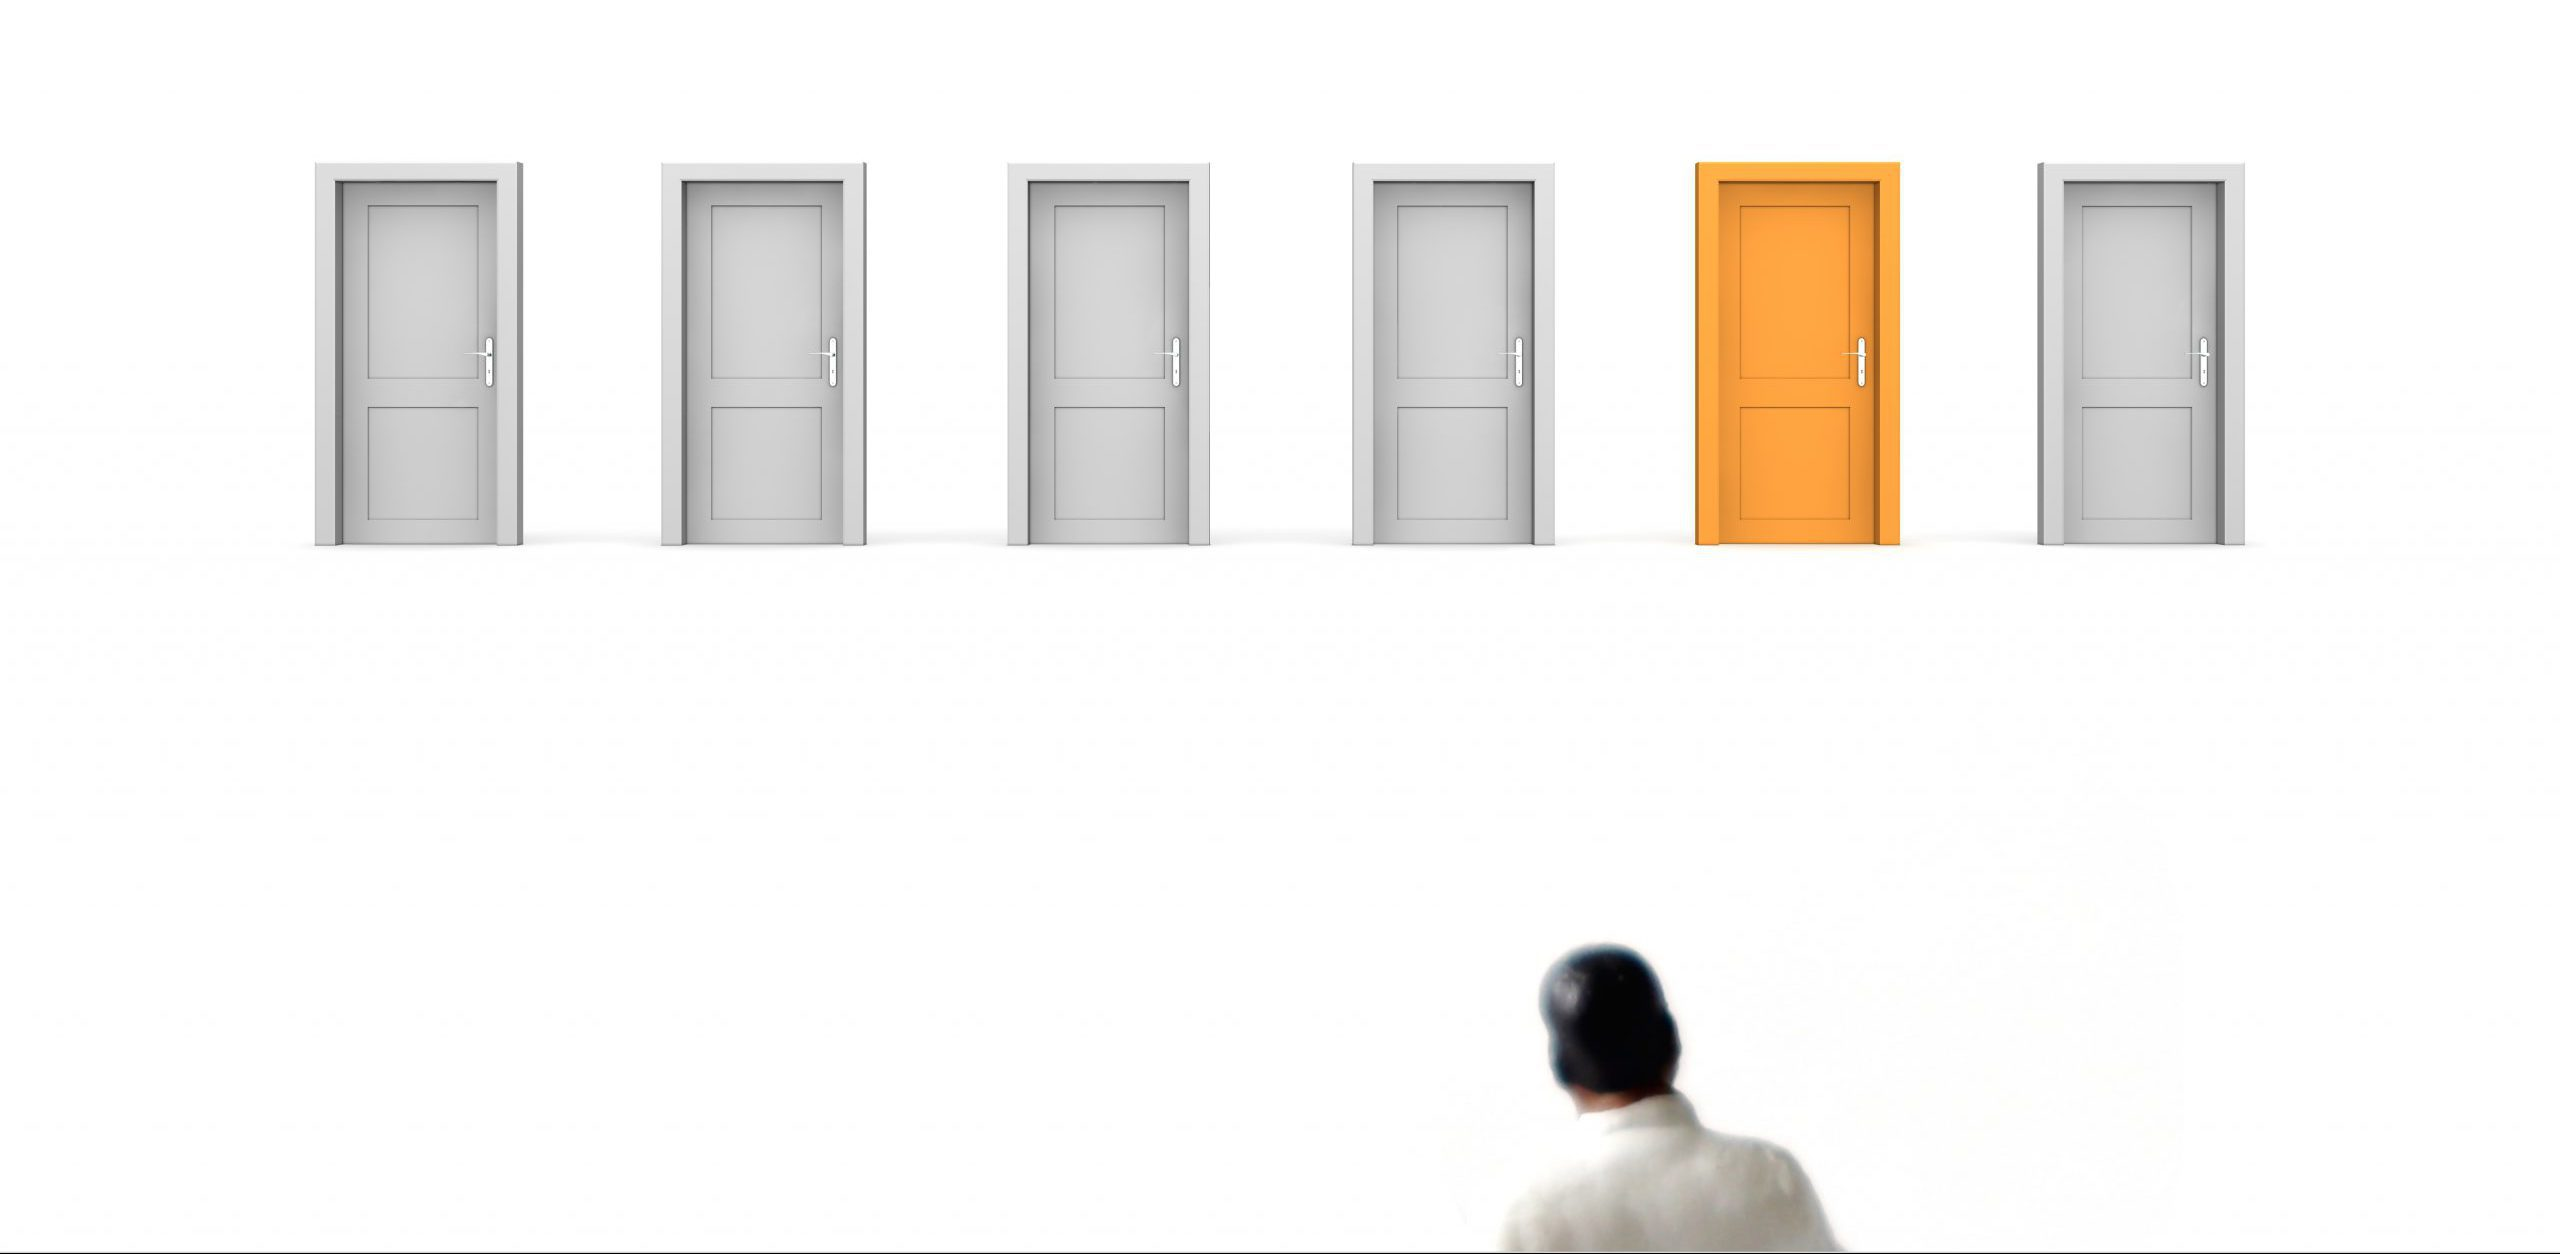 Man standing in front of closed doors